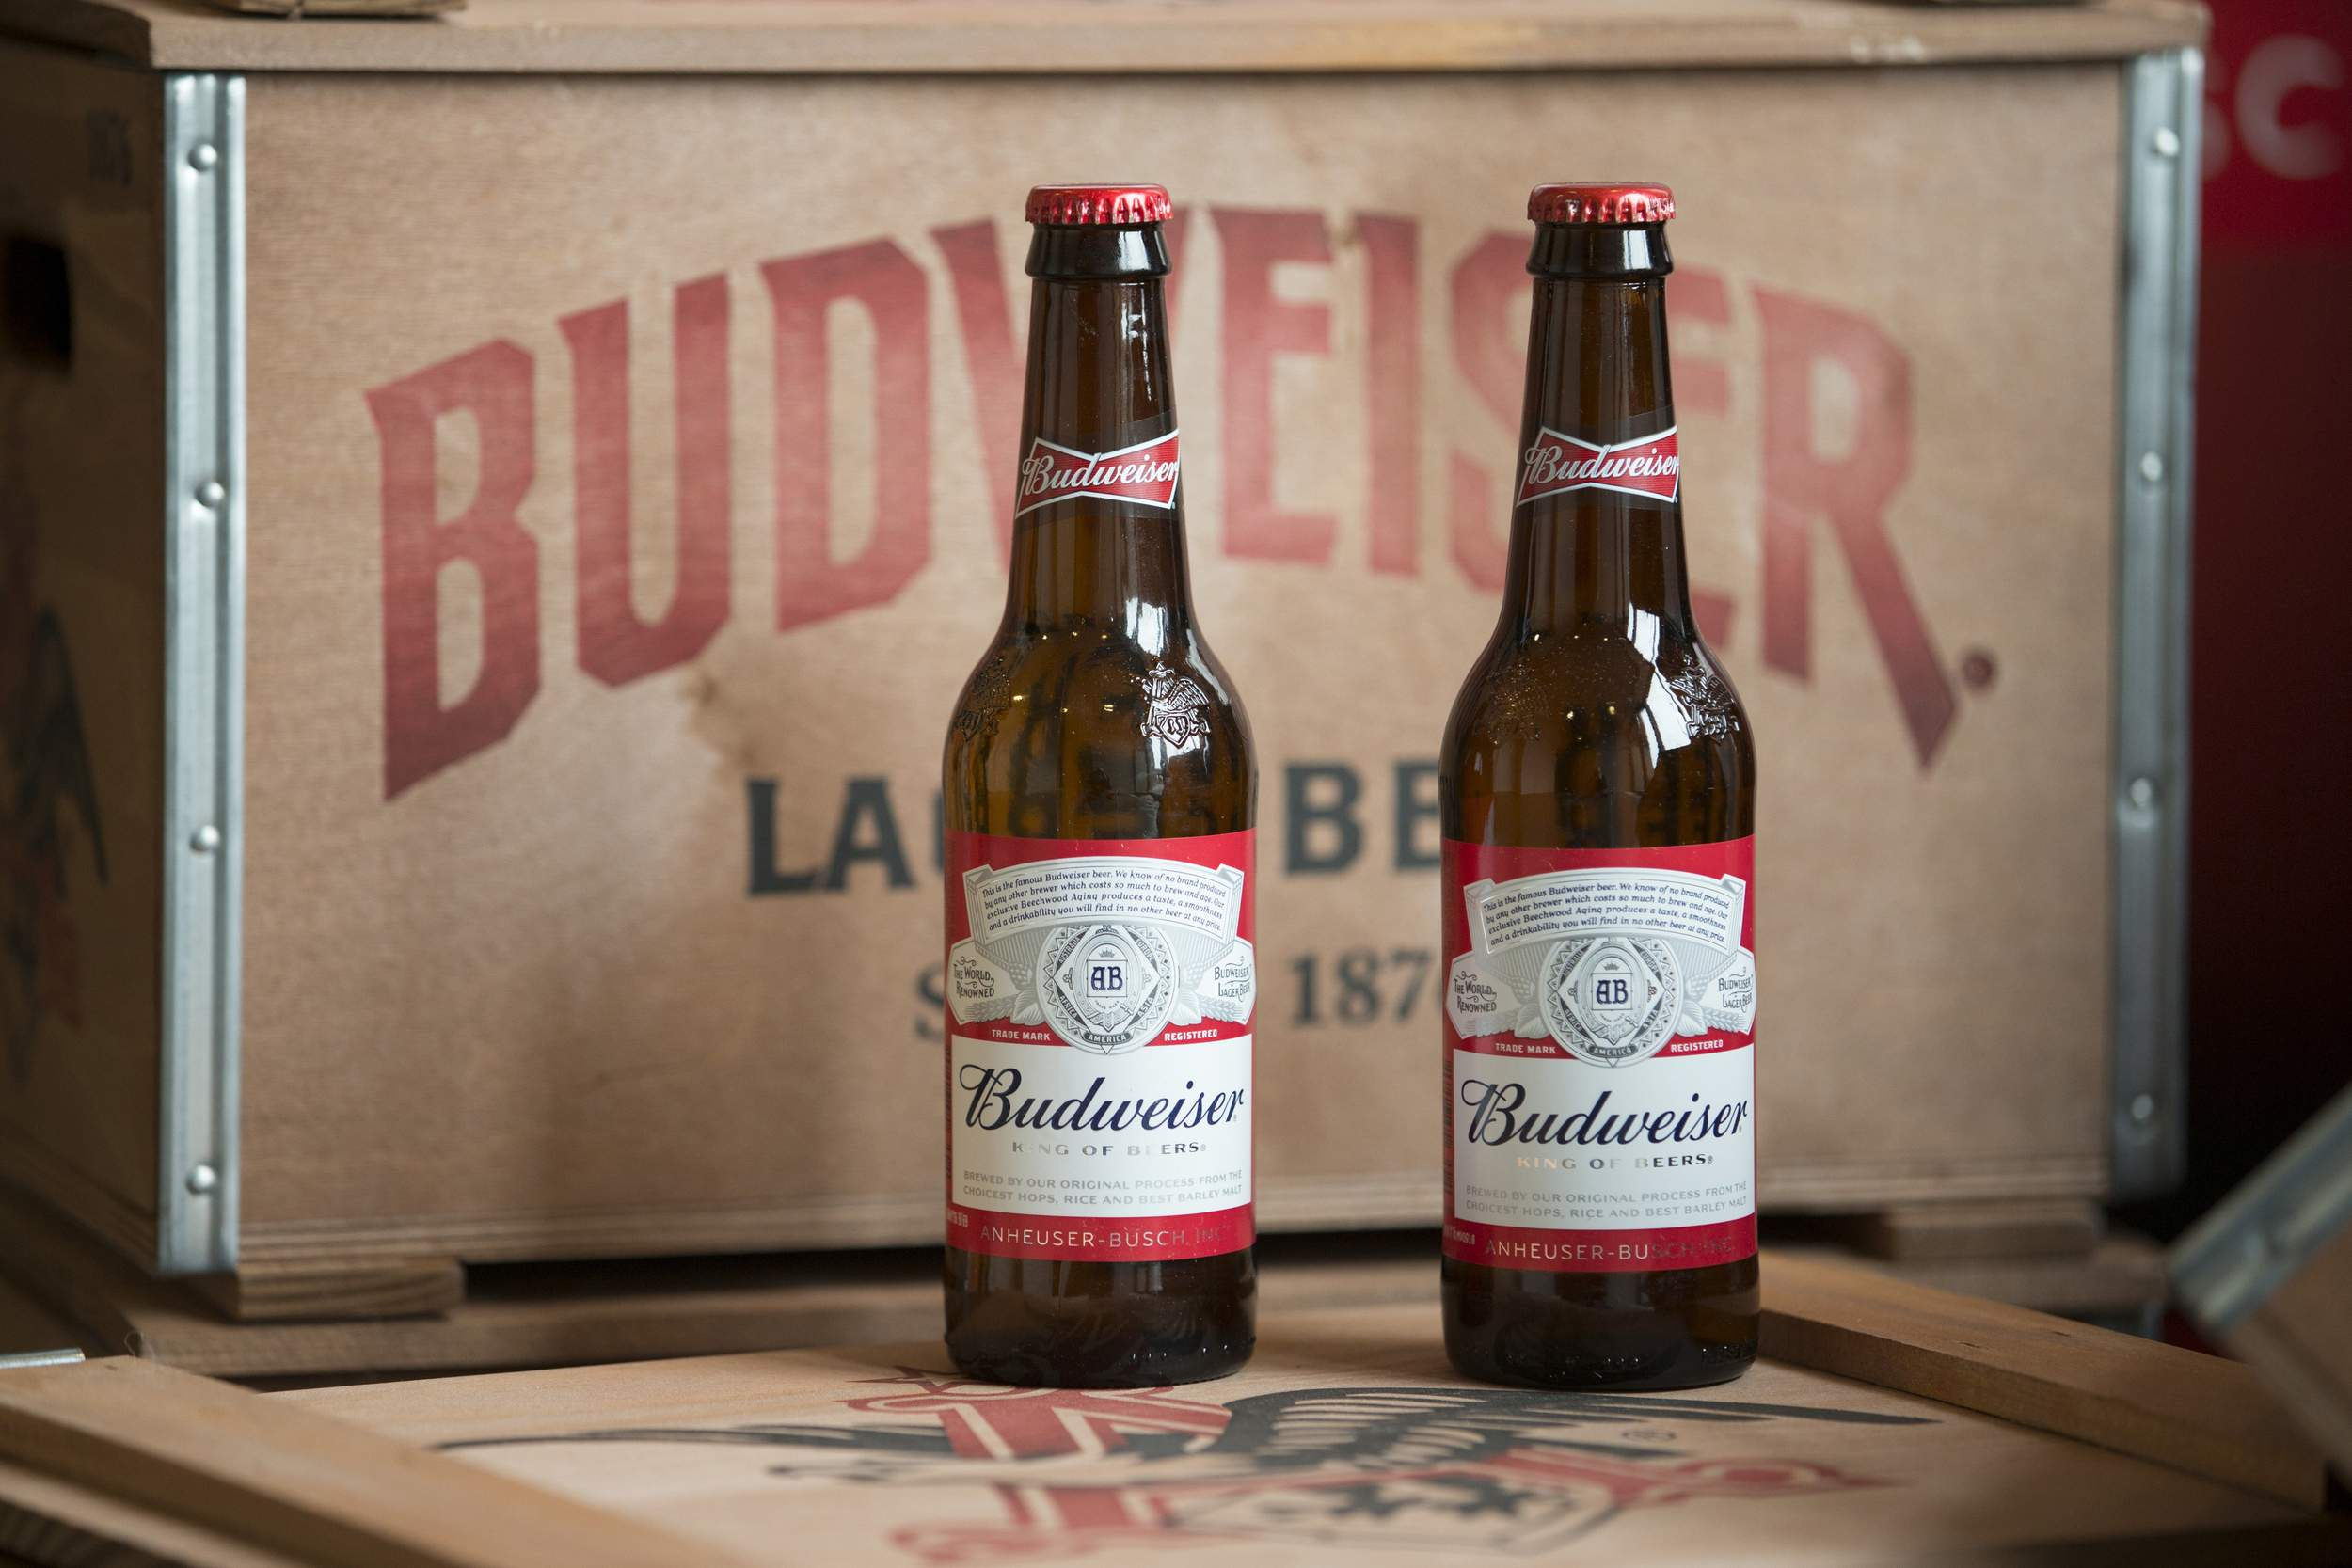 beer_brands_india_under_rs_200_budweiser_image